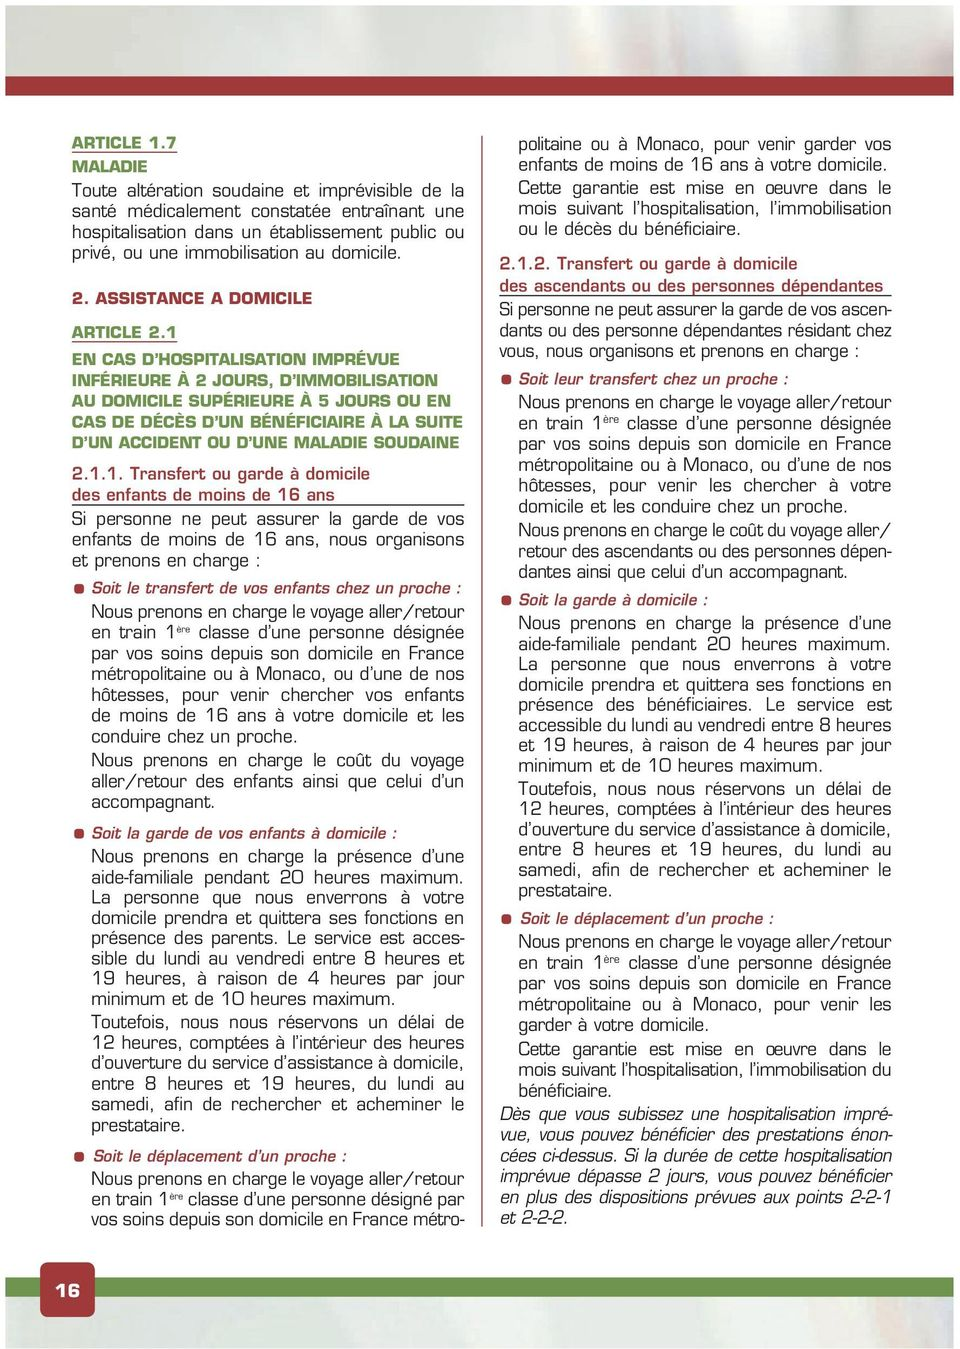 ASSISTANCE A DOMICILE Article 2.